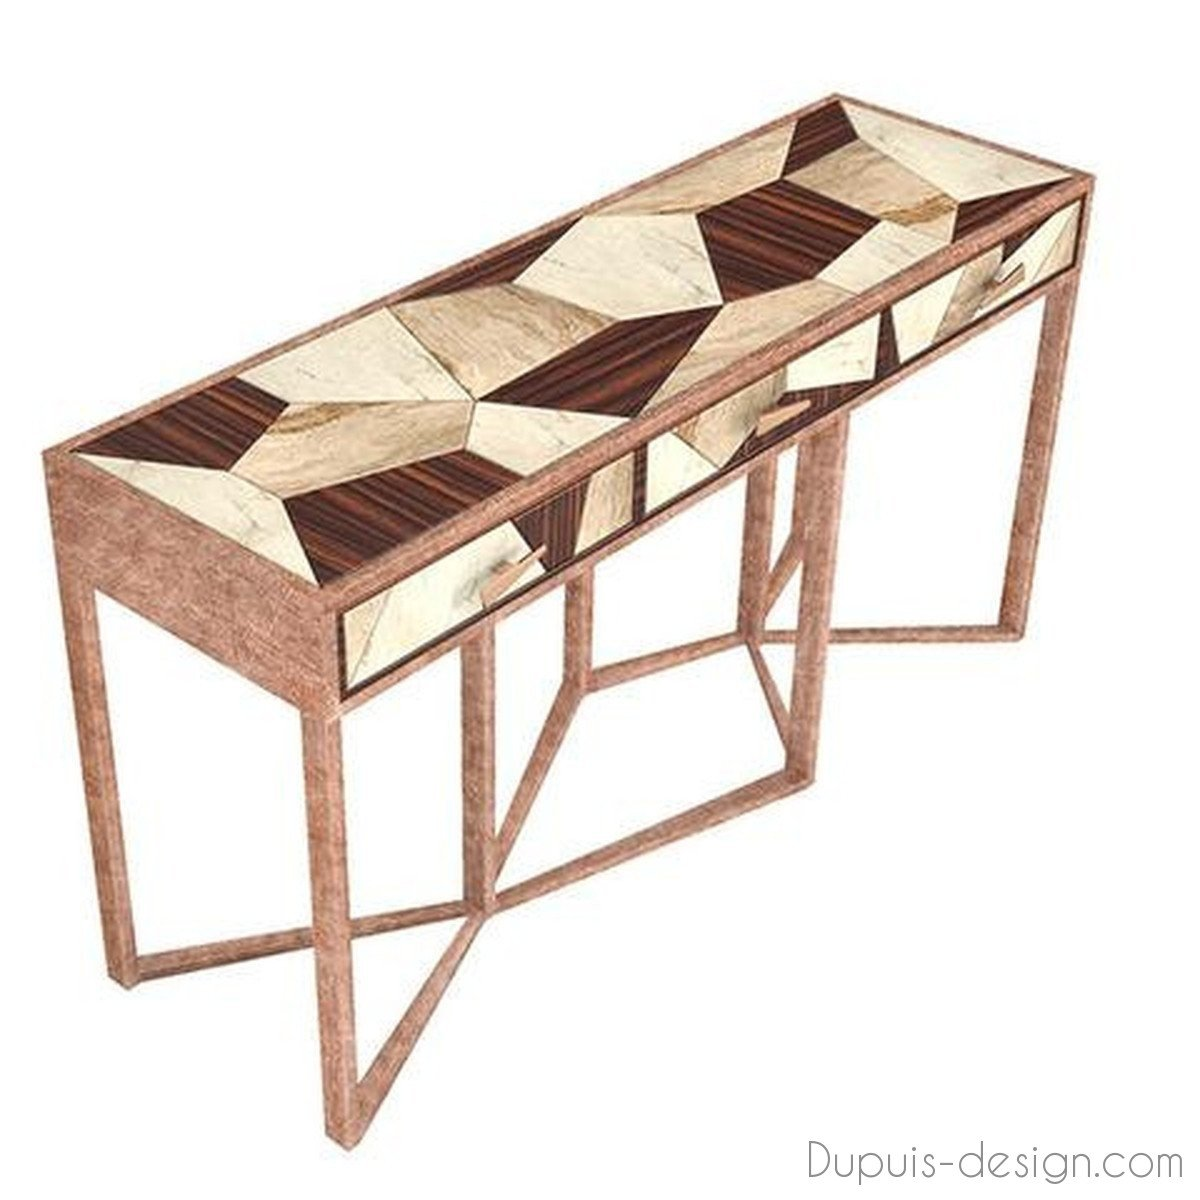 furniture dupuis design diaspore console muranti bypt large mixed material accent table attracts attention with its unique characteristics materials geometric ikea coffee dining